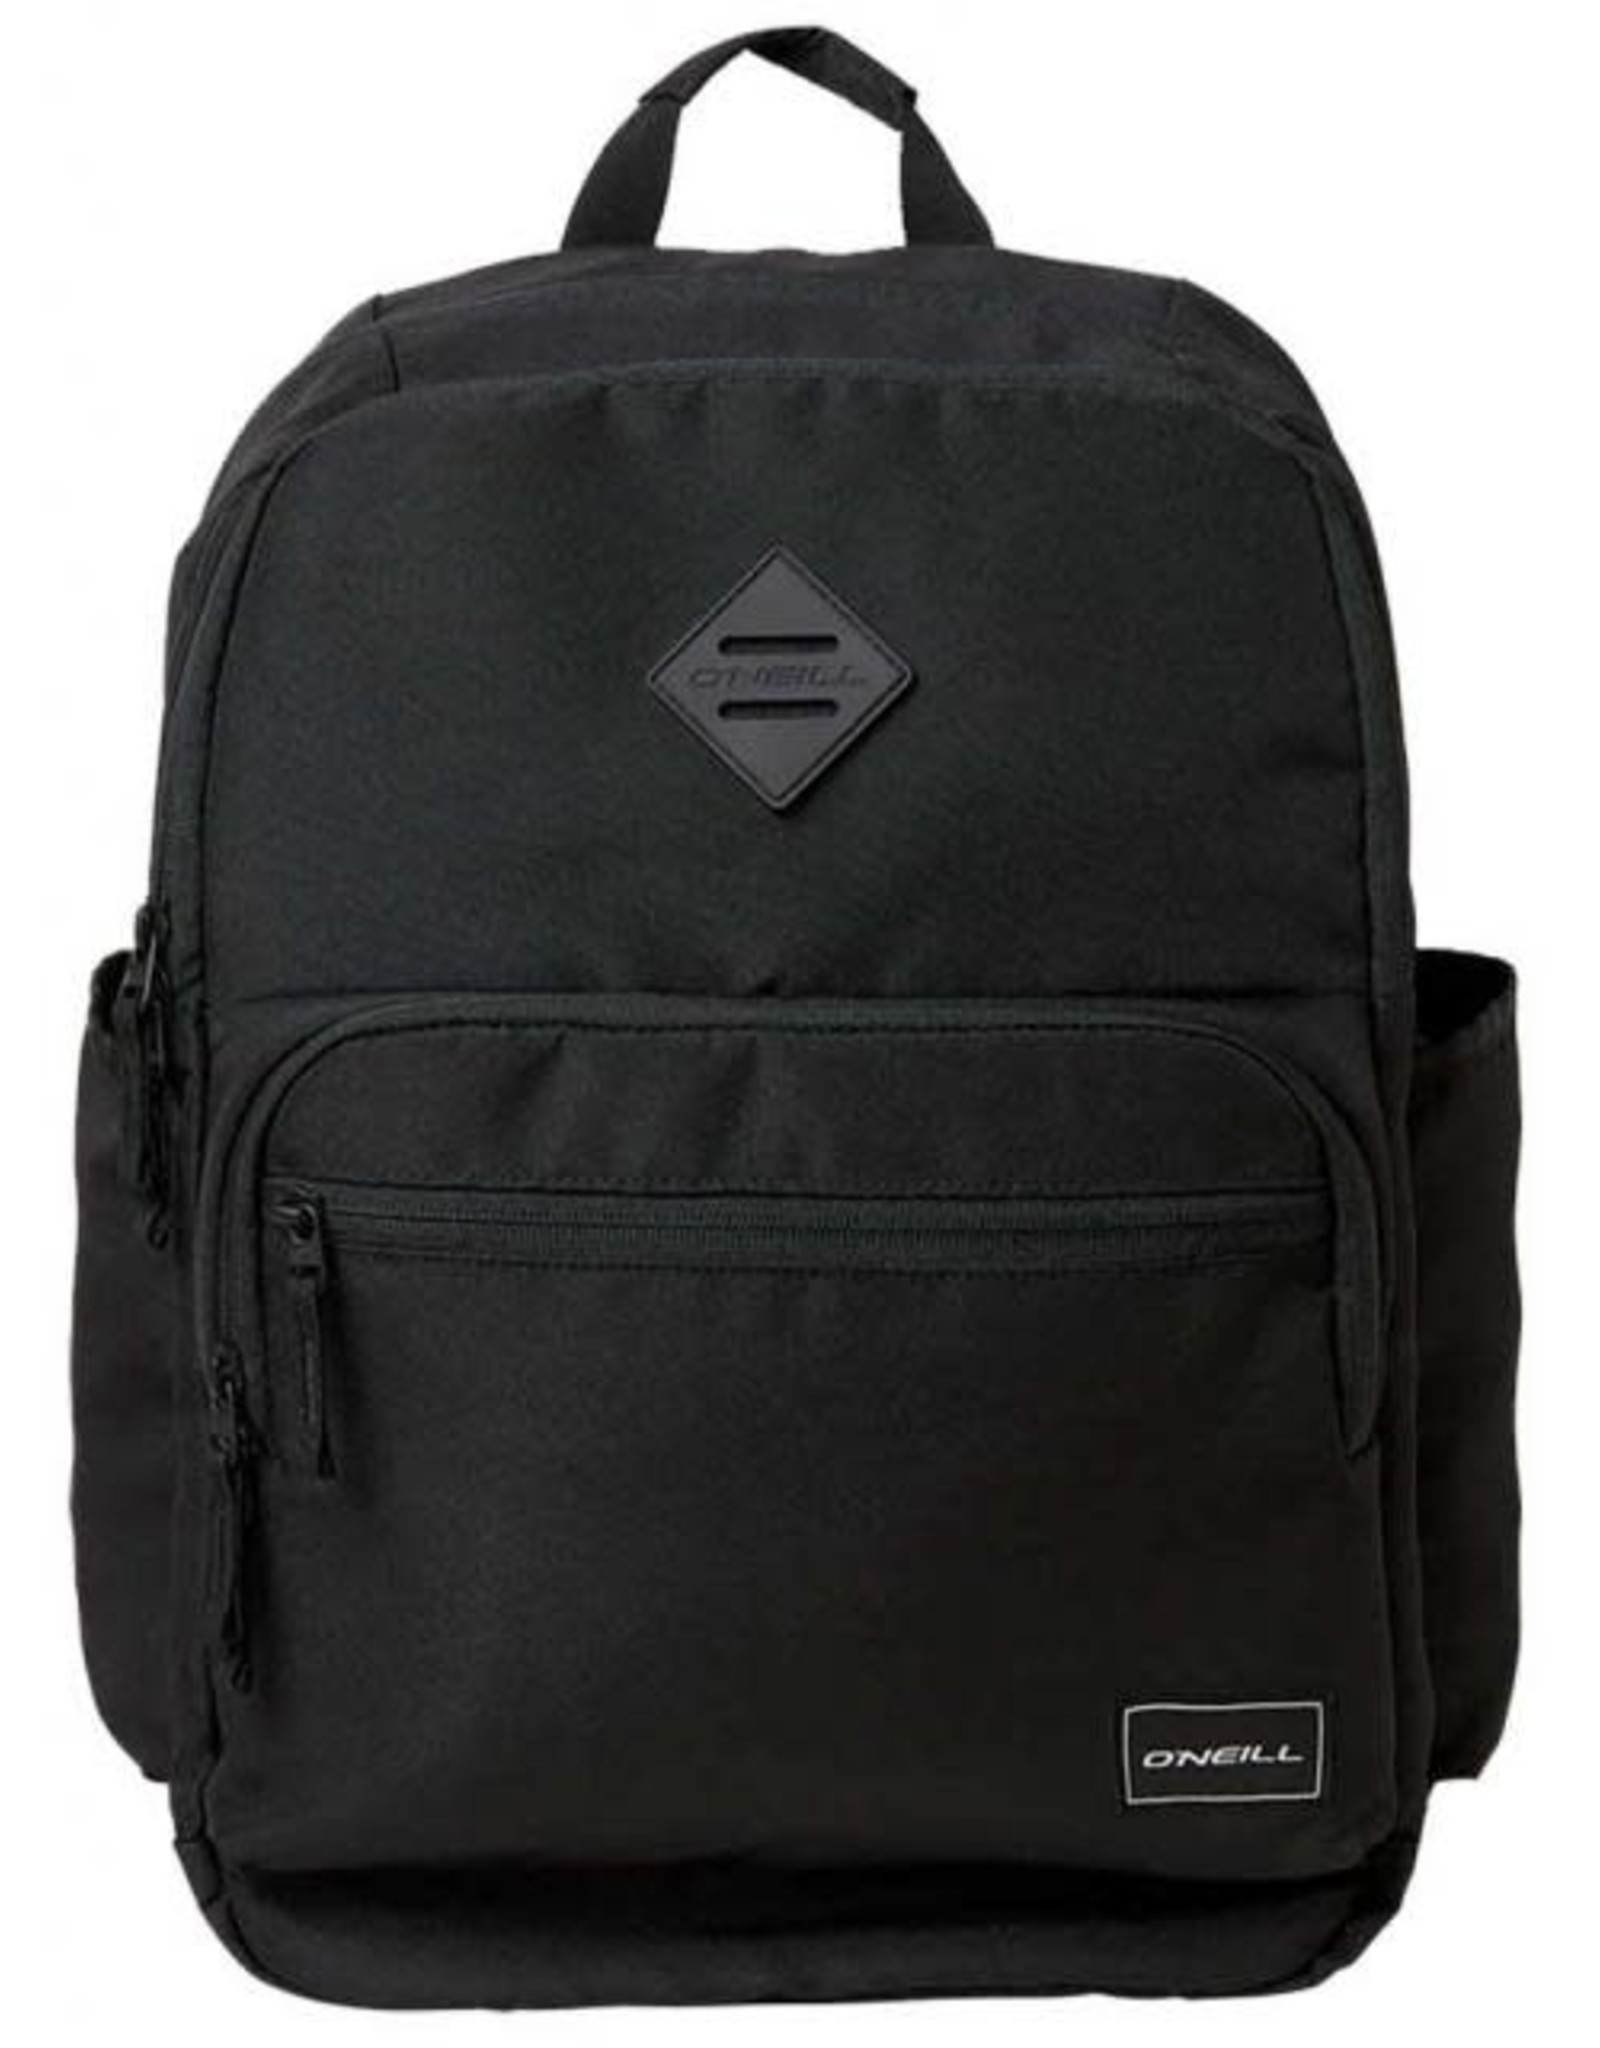 O'NEILL Voyager Backpack